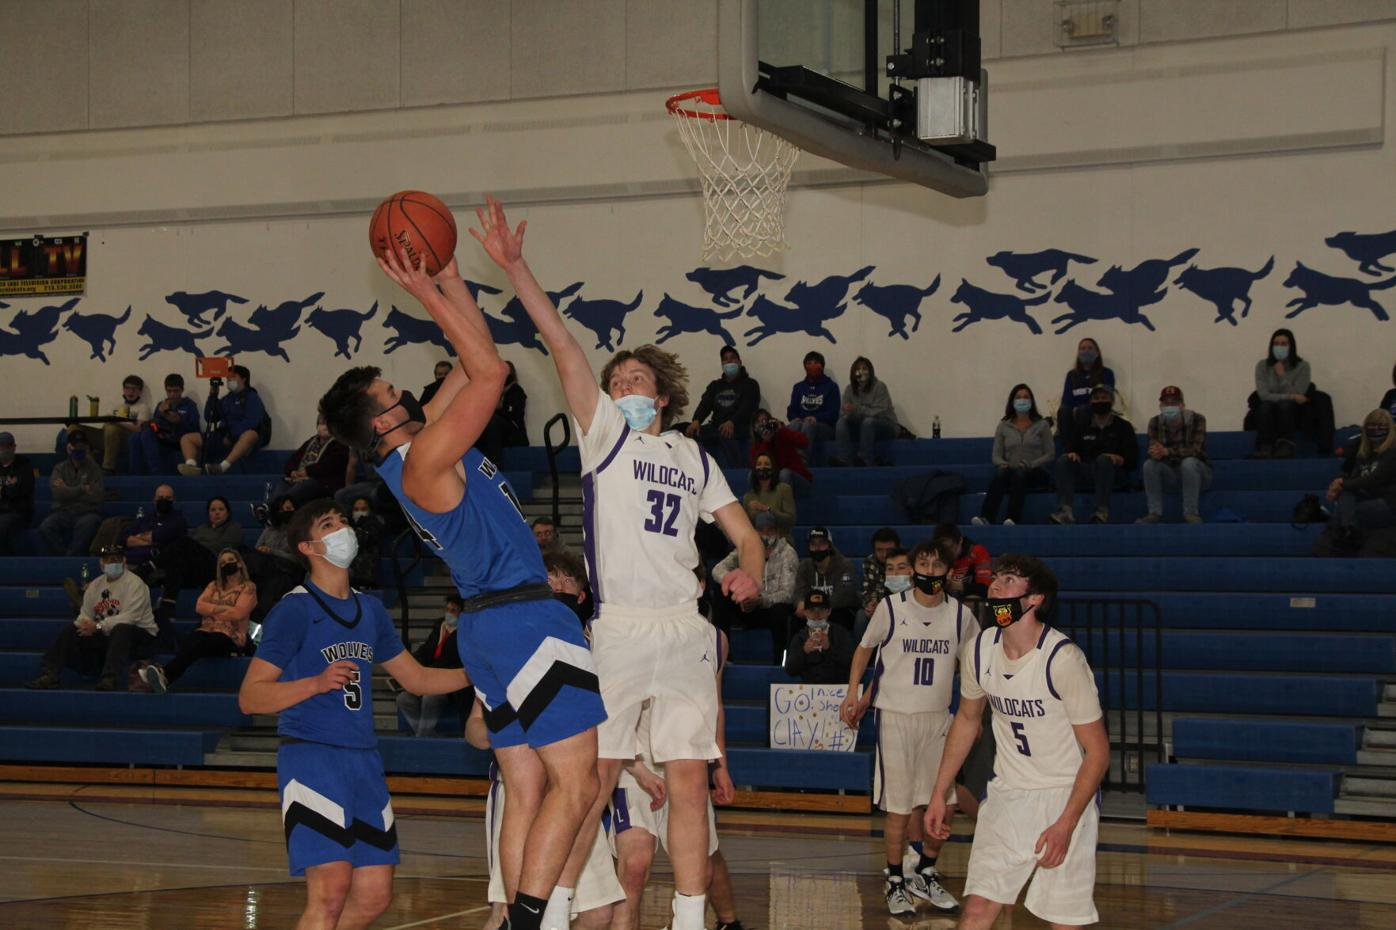 WHA's Carson Strosahl goes up for a first-half shot as Laporte's Zack Evans tries to block it.